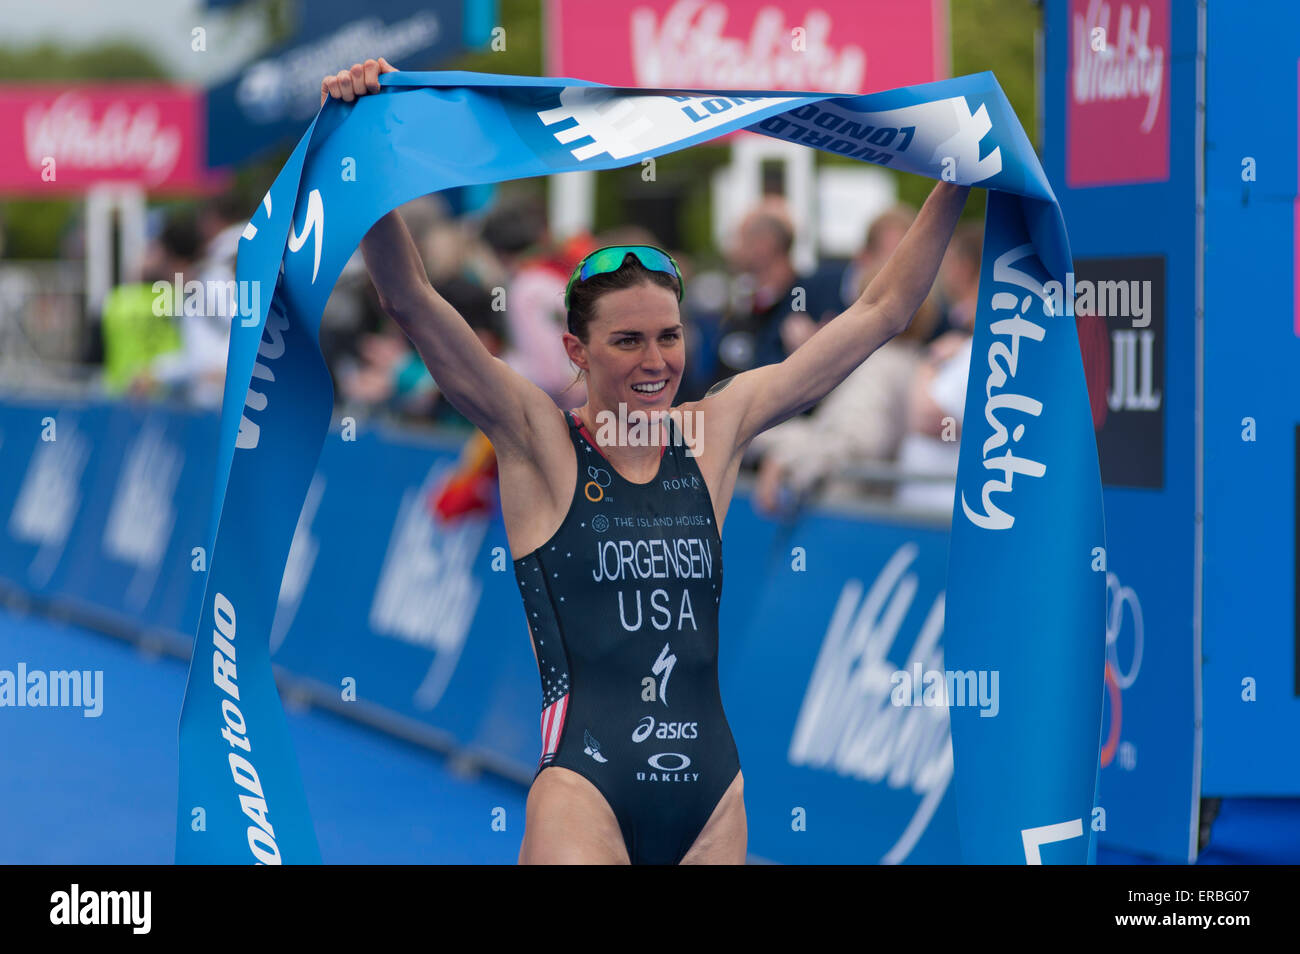 Hyde Park, London, UK. 31st May, 2015. Part of the ITU World Triathlon Series, the Elite Women's race includes a - Stock Image